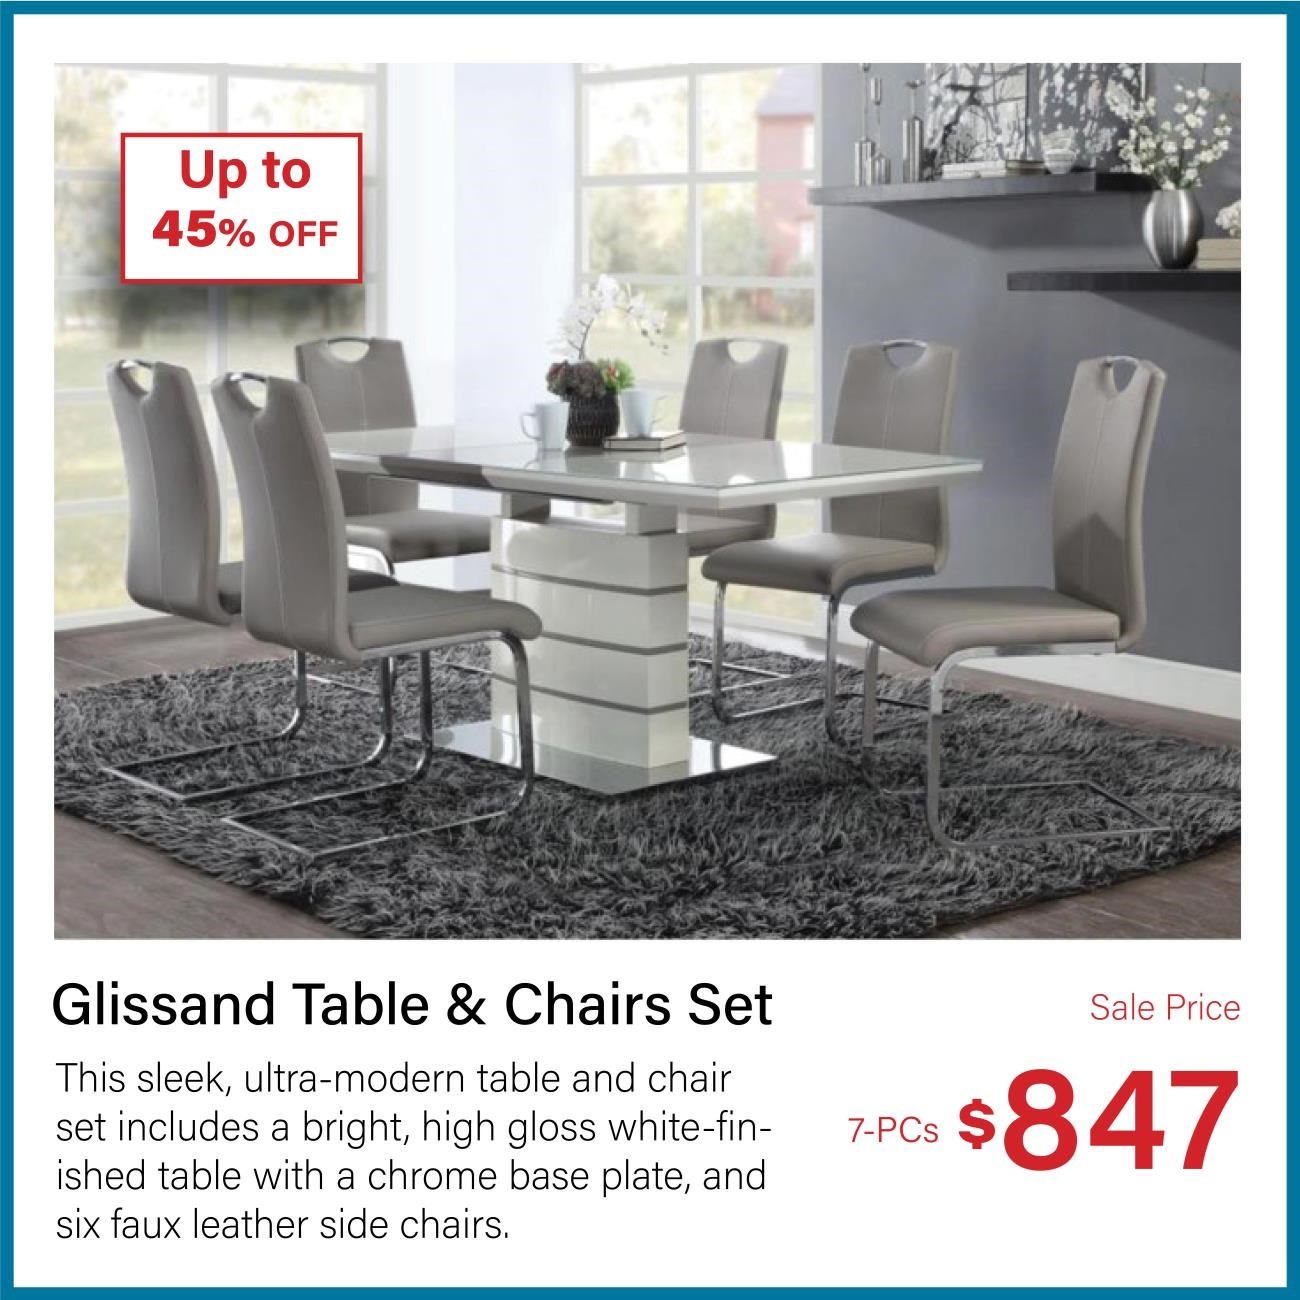 glissand 7-pc table and chair set